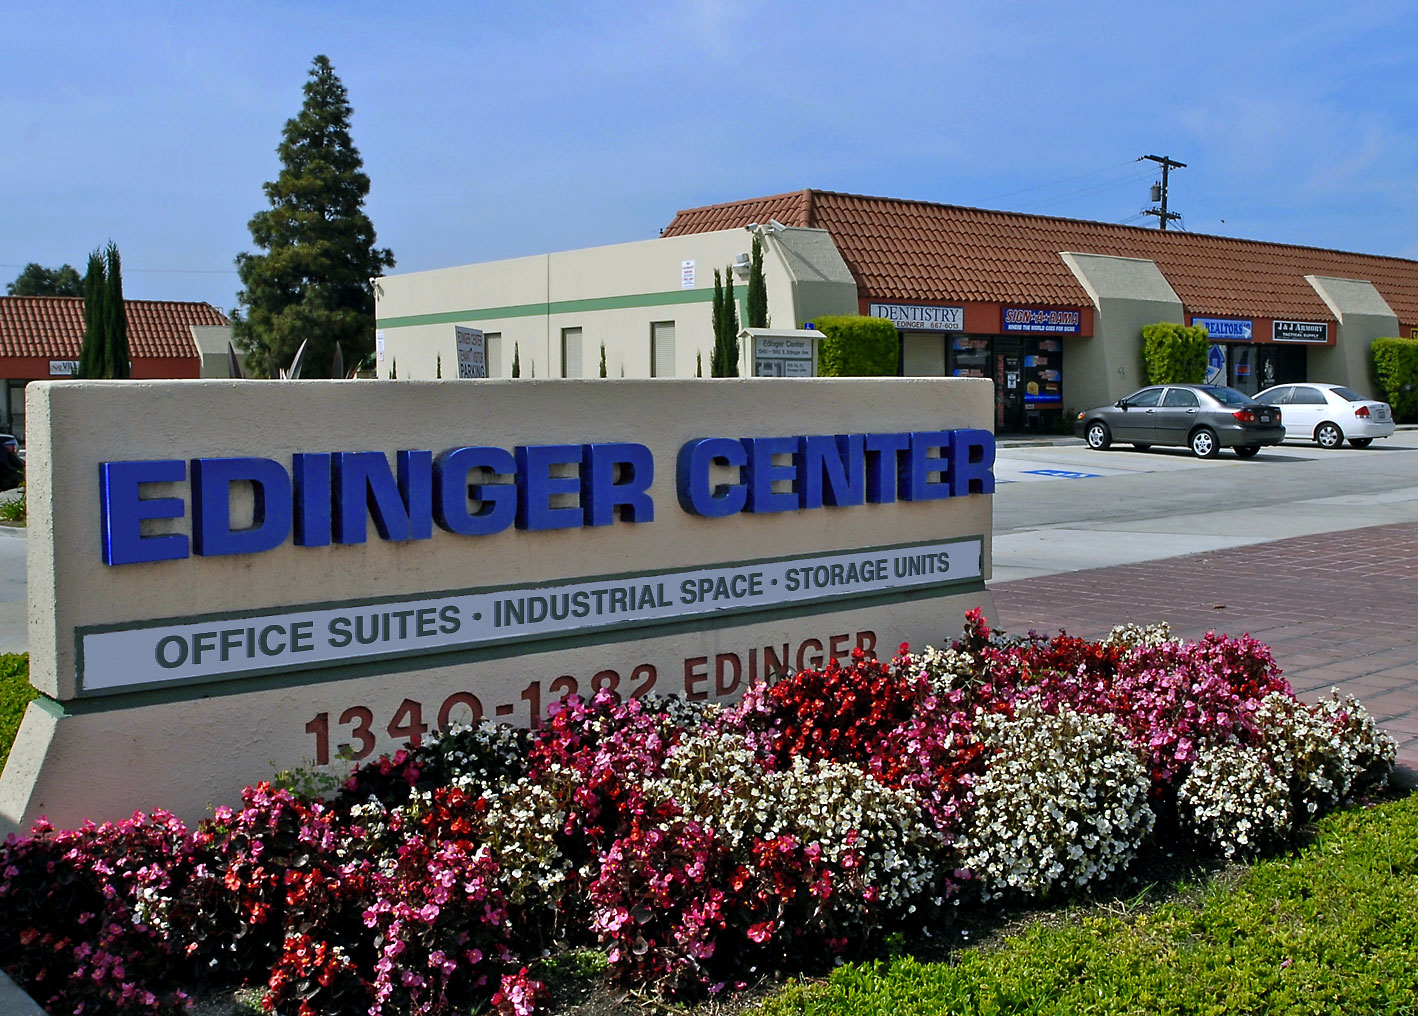 Edinger Center facility sign